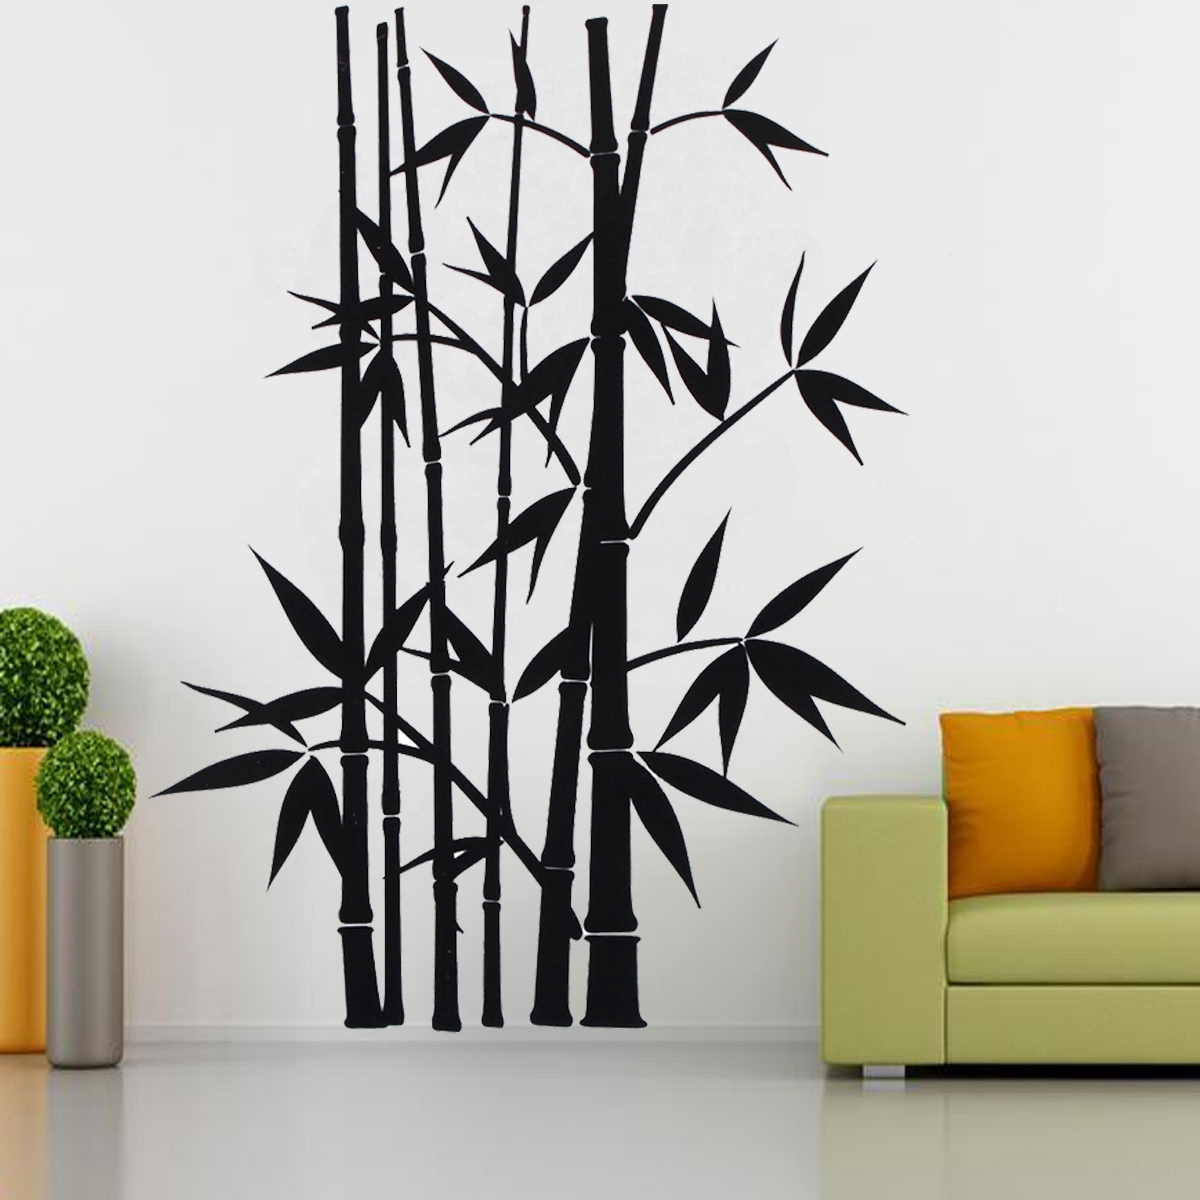 Removable Wall Sticker Home Decor Art Decoration Mural Decal Vinyl With Bamboo Wall Art (View 4 of 20)